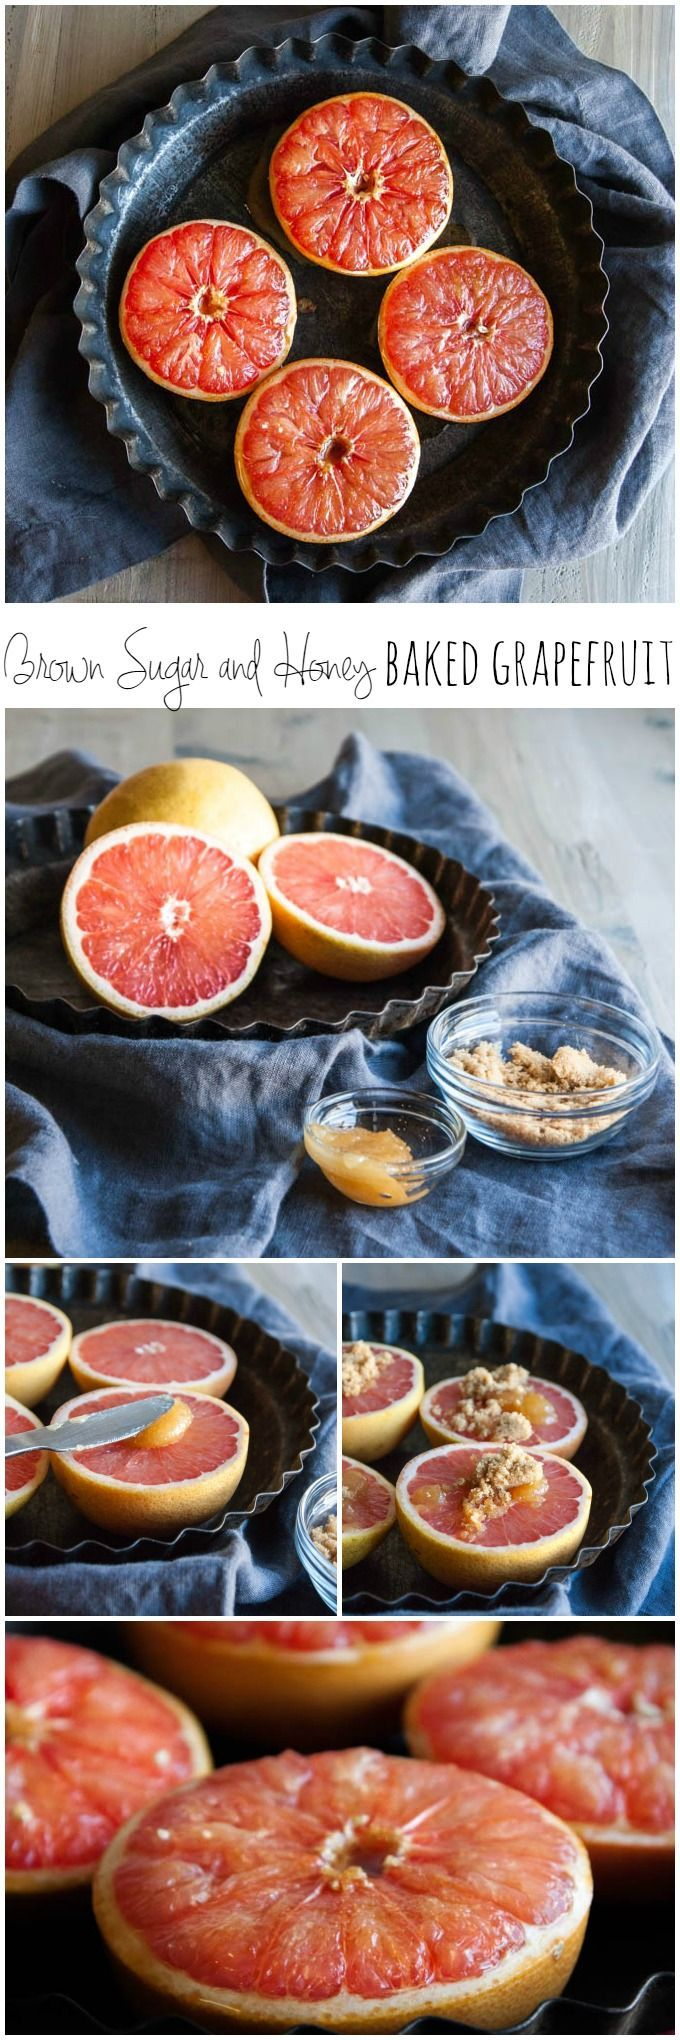 Brown sugar and honey baked grapefruit, baked grapefruit, baked grapefruit recipe,brown sugar baked grapefruit, grapefruit recipes,